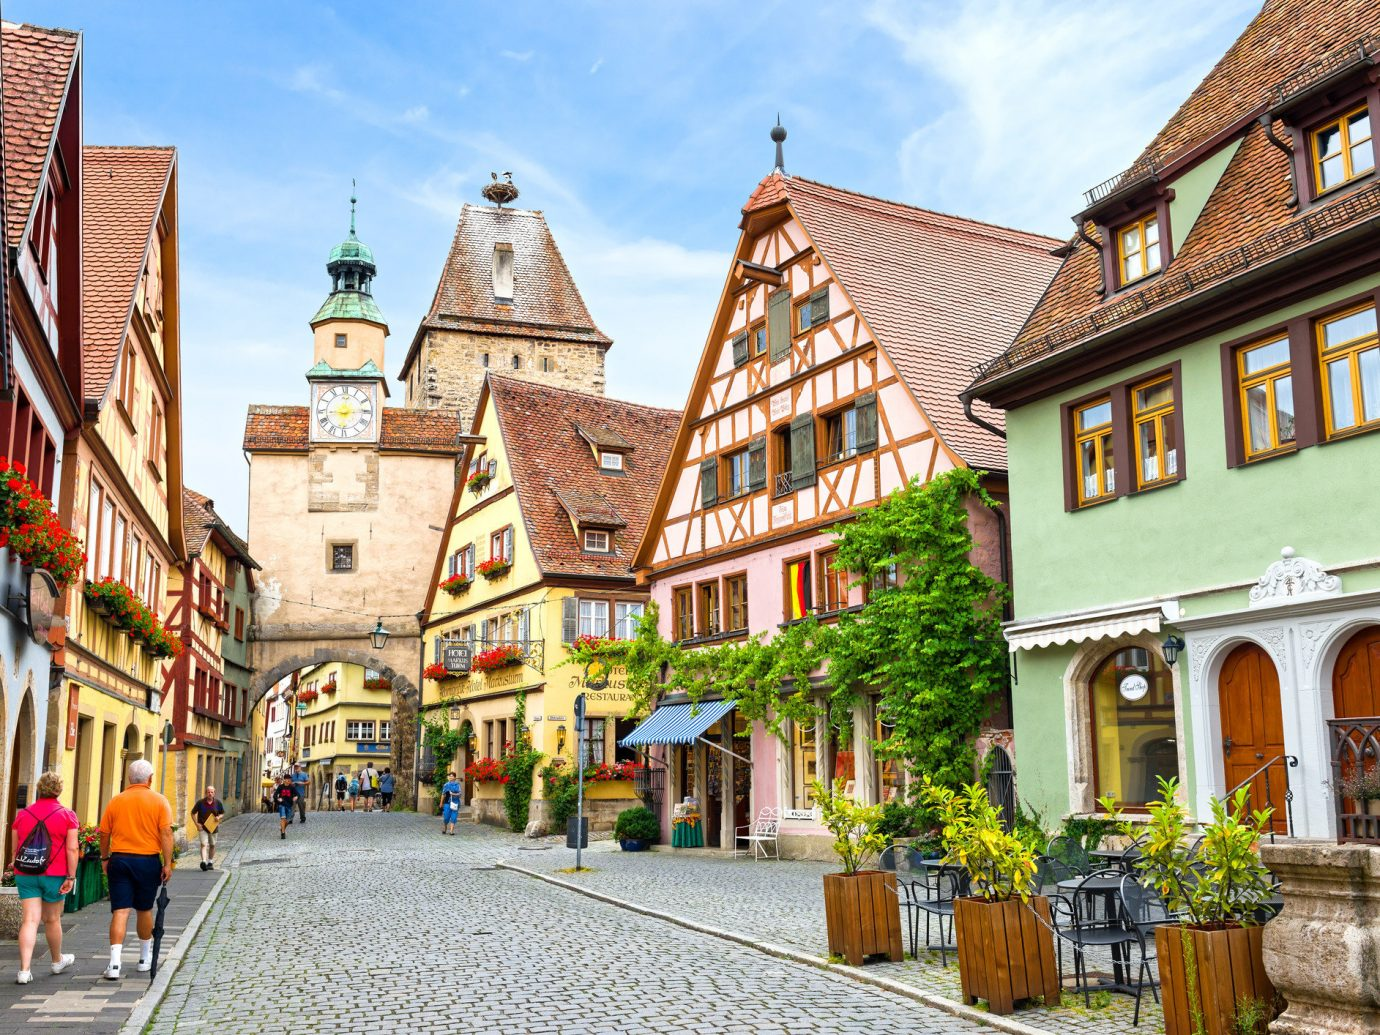 Travel Tech Travel Tips building outdoor Town road neighbourhood street City human settlement scene vacation tourism residential area way infrastructure cityscape Downtown facade travel Village stone